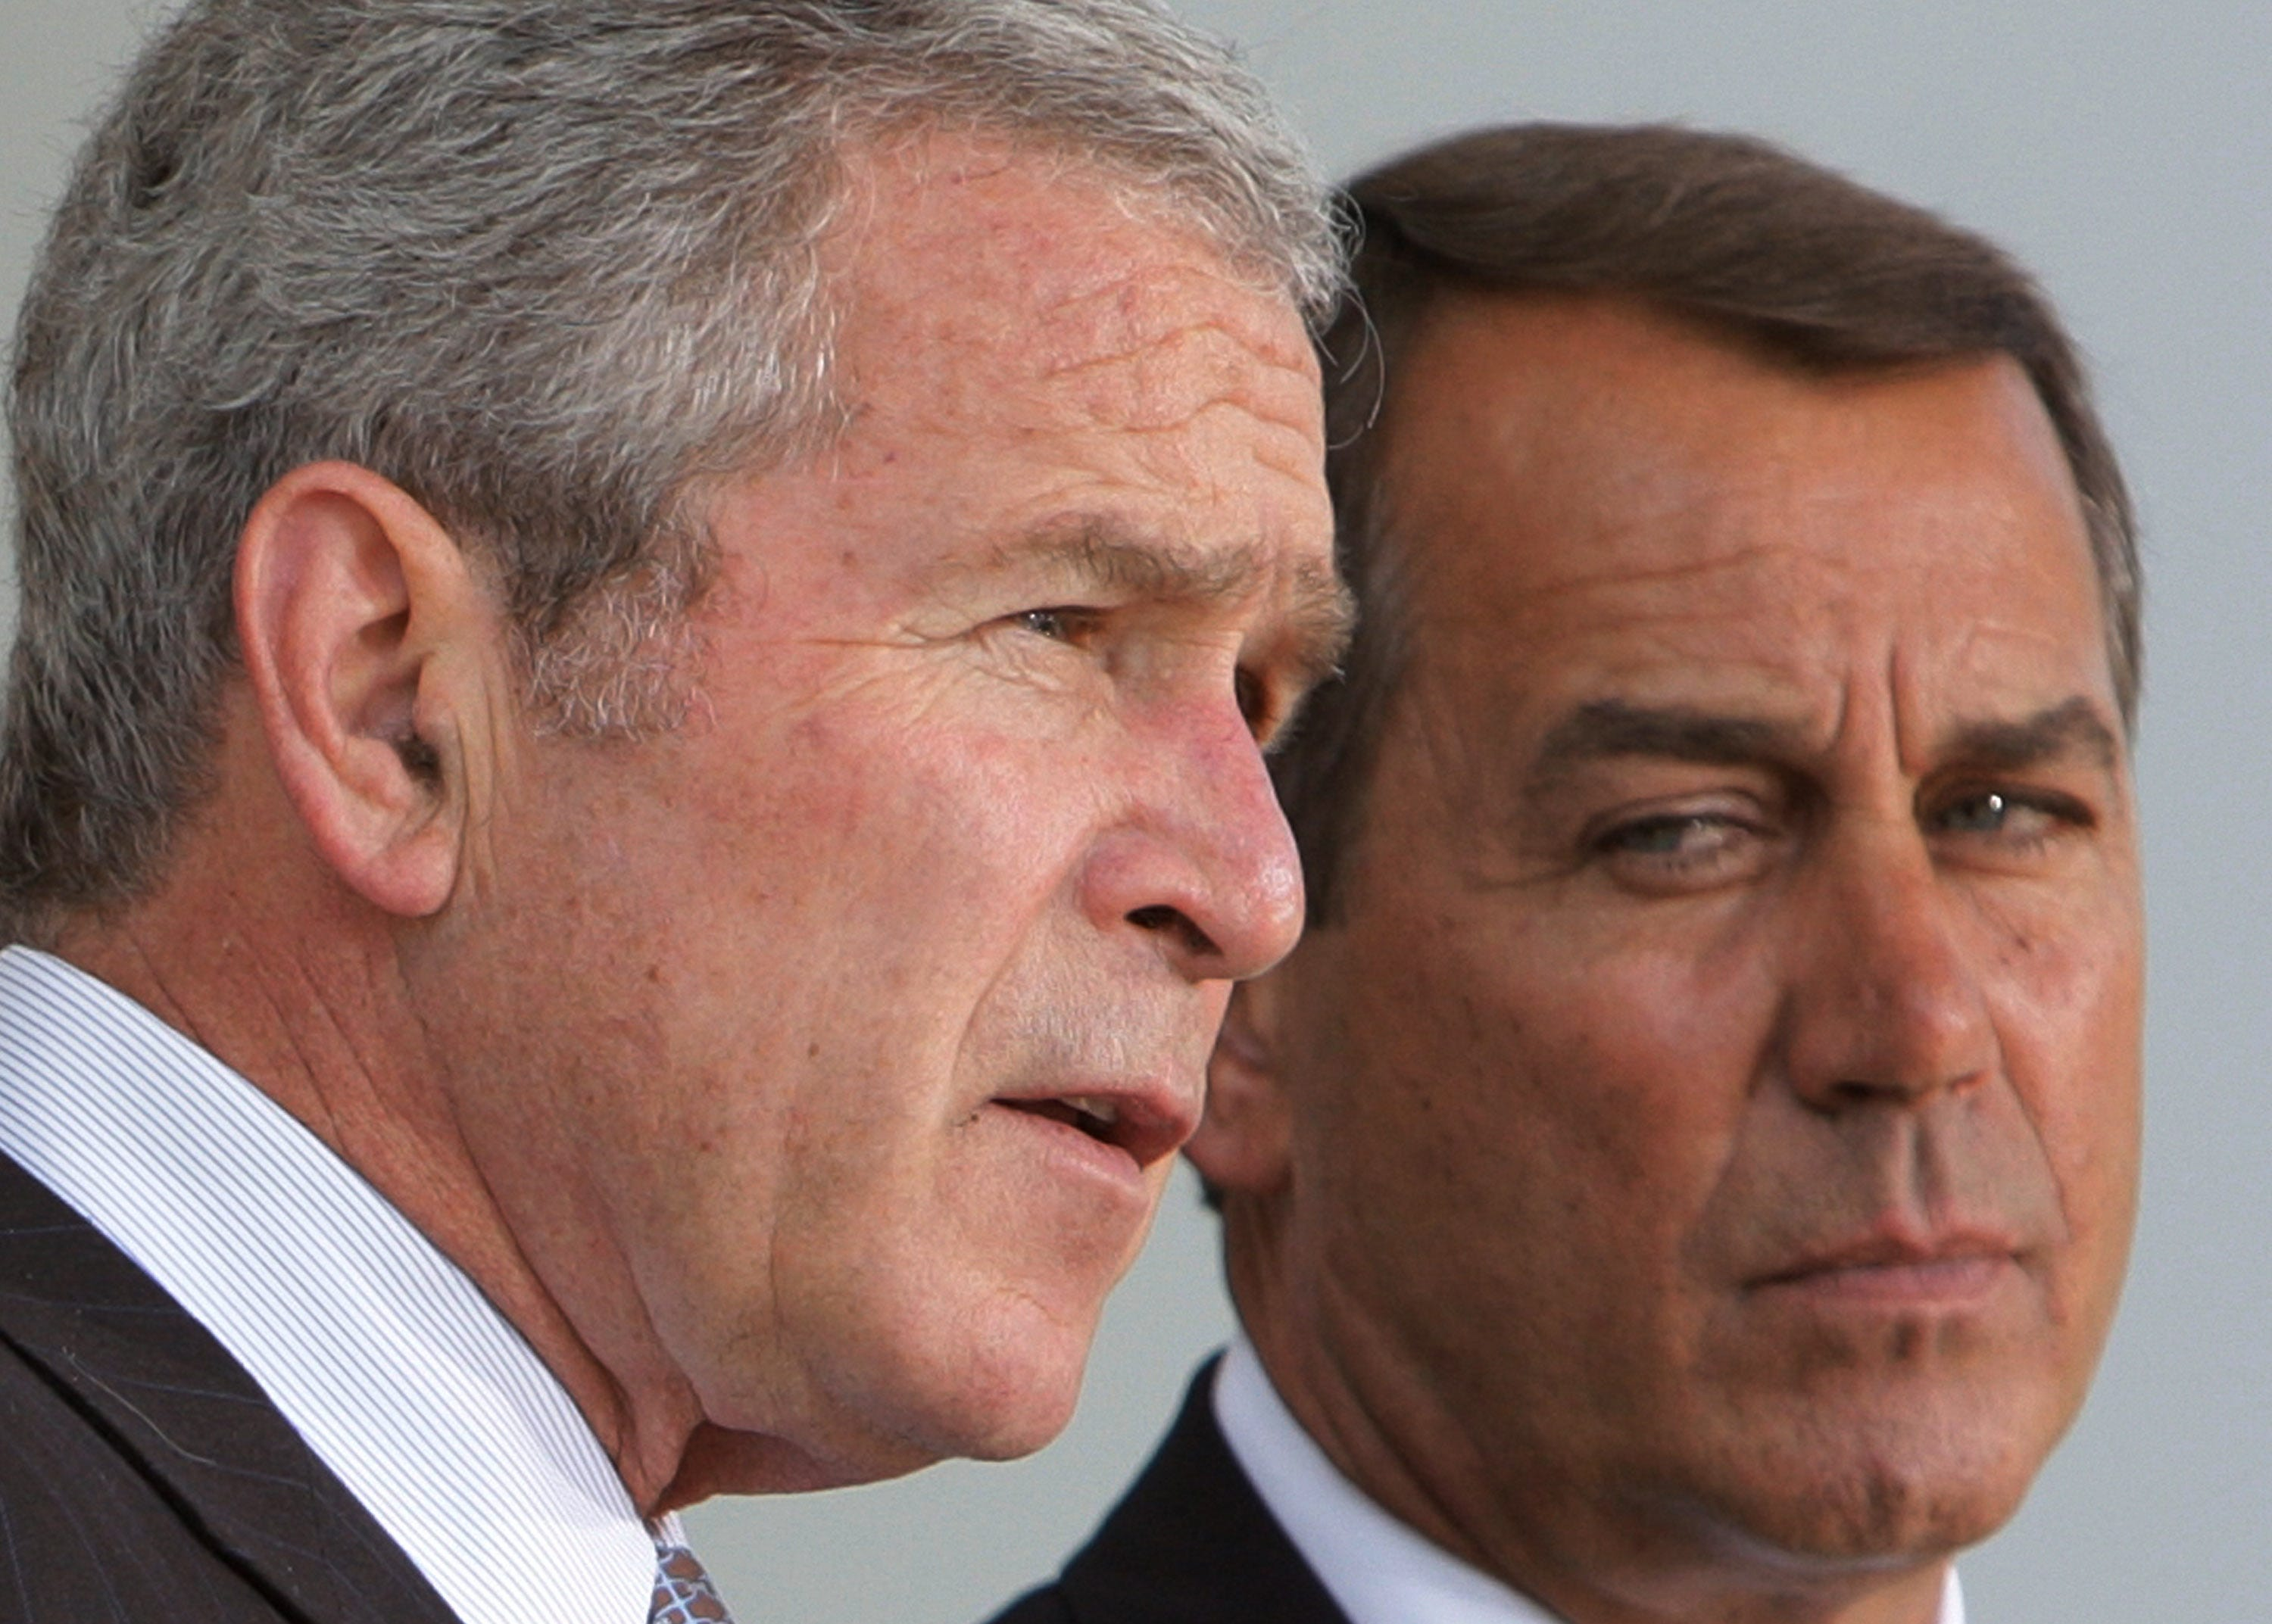 Former President George W. Bush with John Boehner at the White House in 2008.